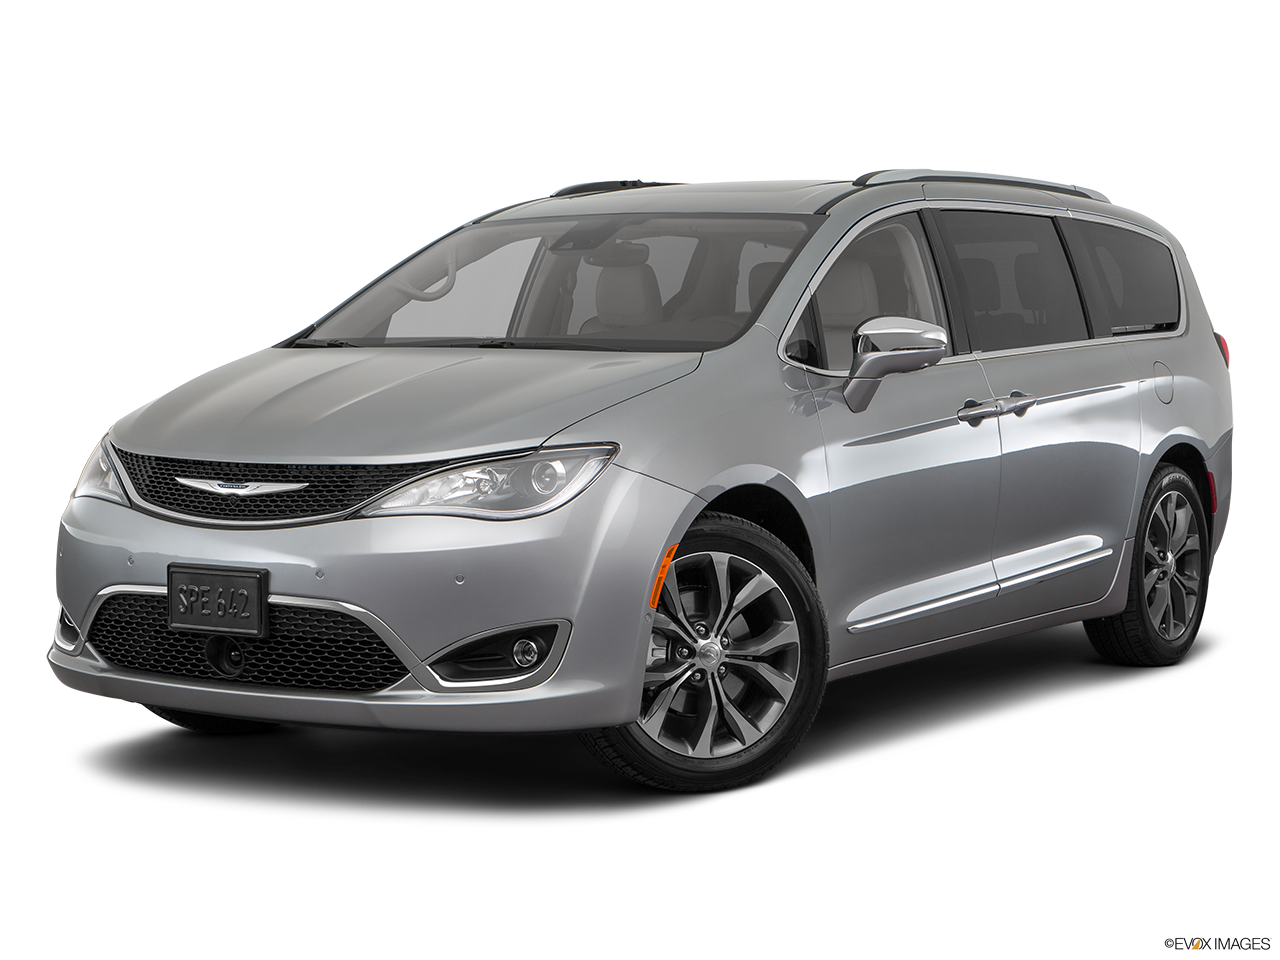 Exterior view of the Chrysler  Pacifica